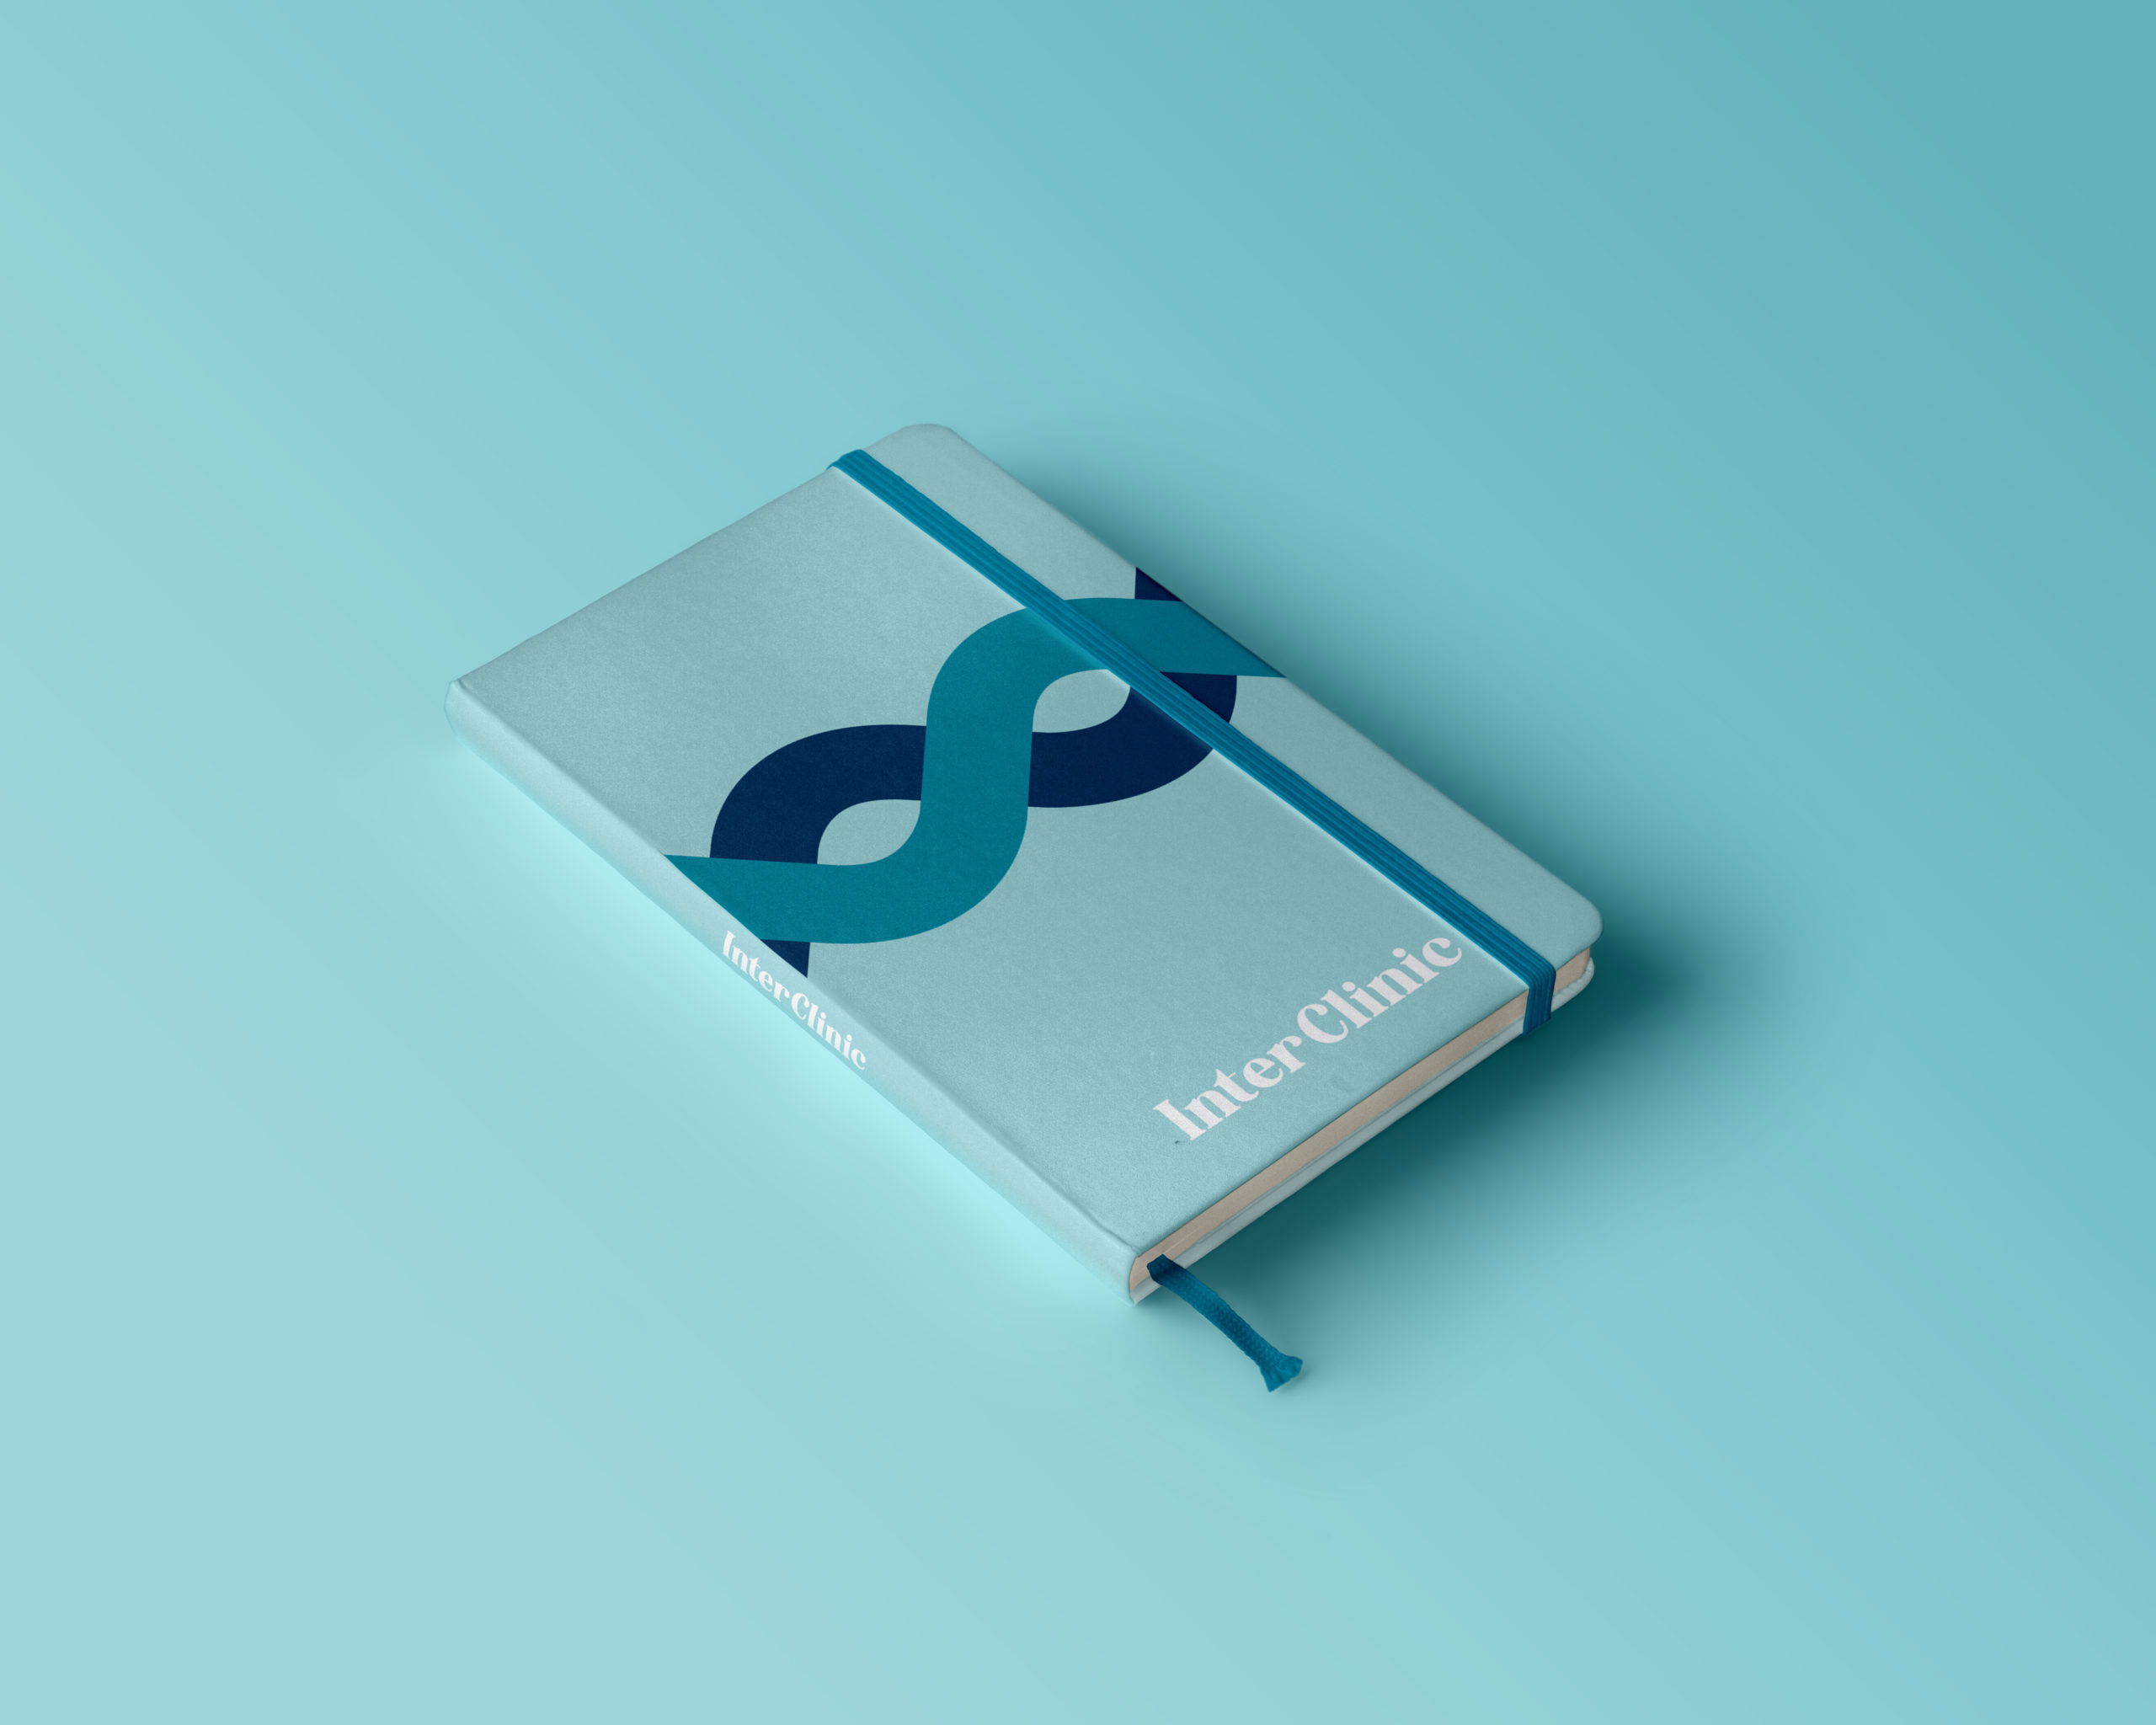 Notebook-Mockup-vol-2-Isometric-view